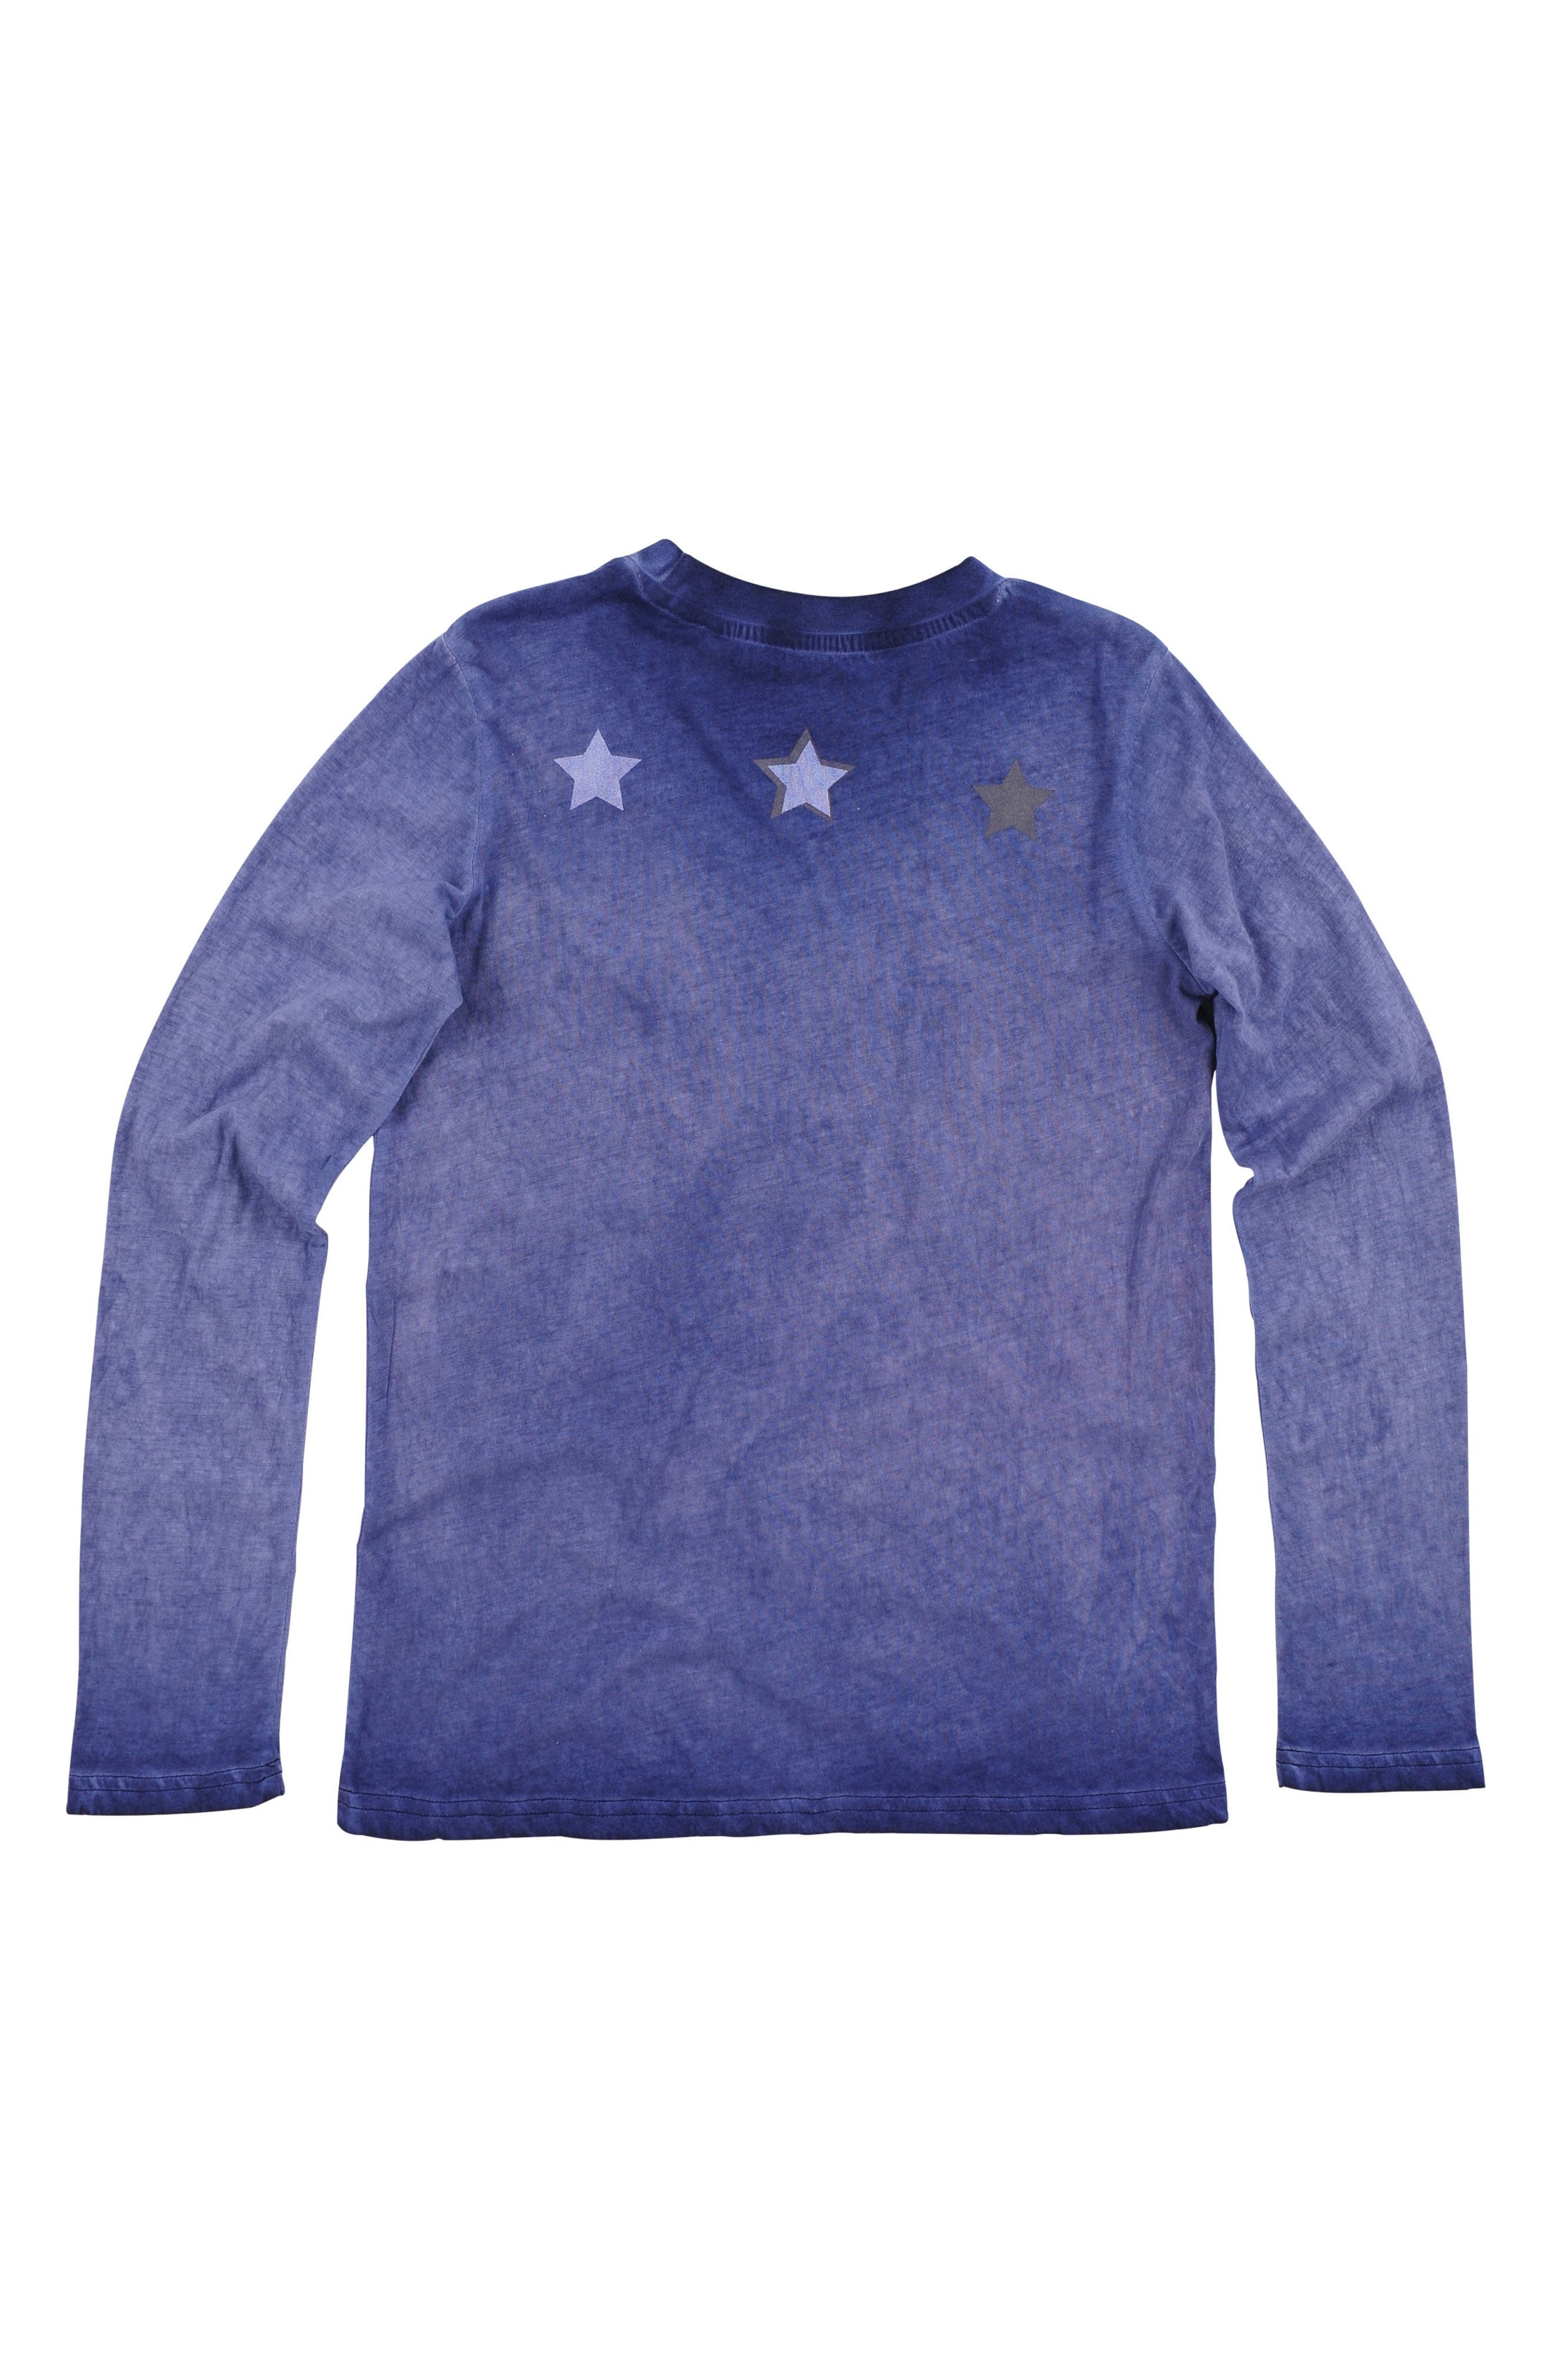 Give Me Space Long Sleeve T-Shirt,                         Main,                         color, 401